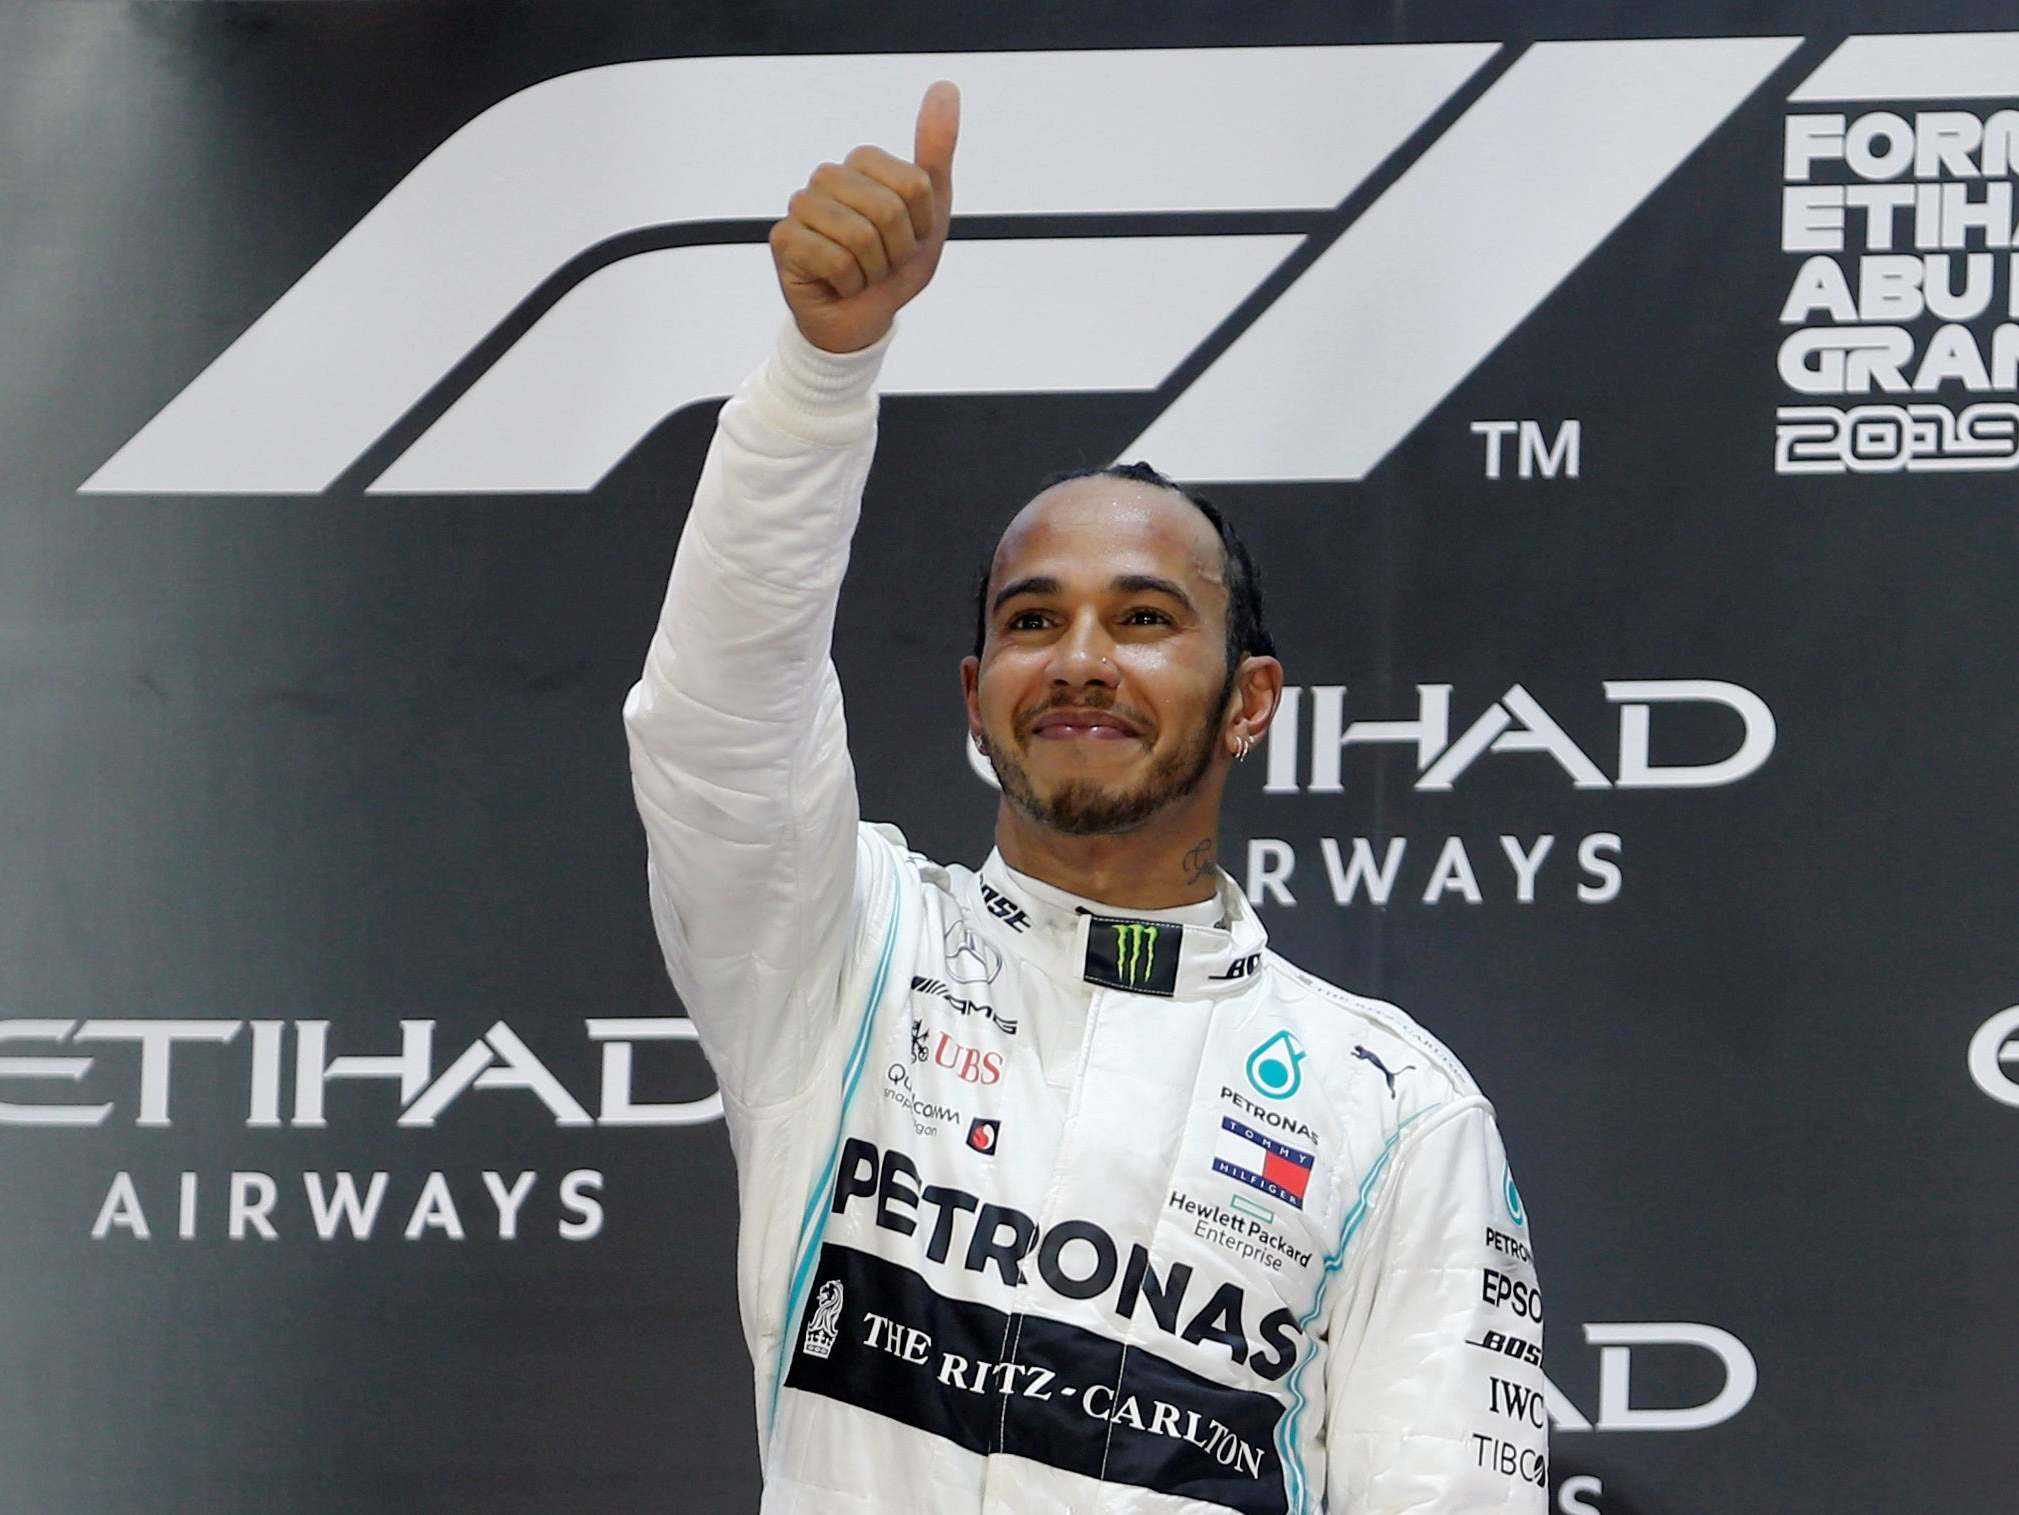 Lewis Hamilton will snub Ferrari to stay with Mercedes at end of the season, believes David Coulthard